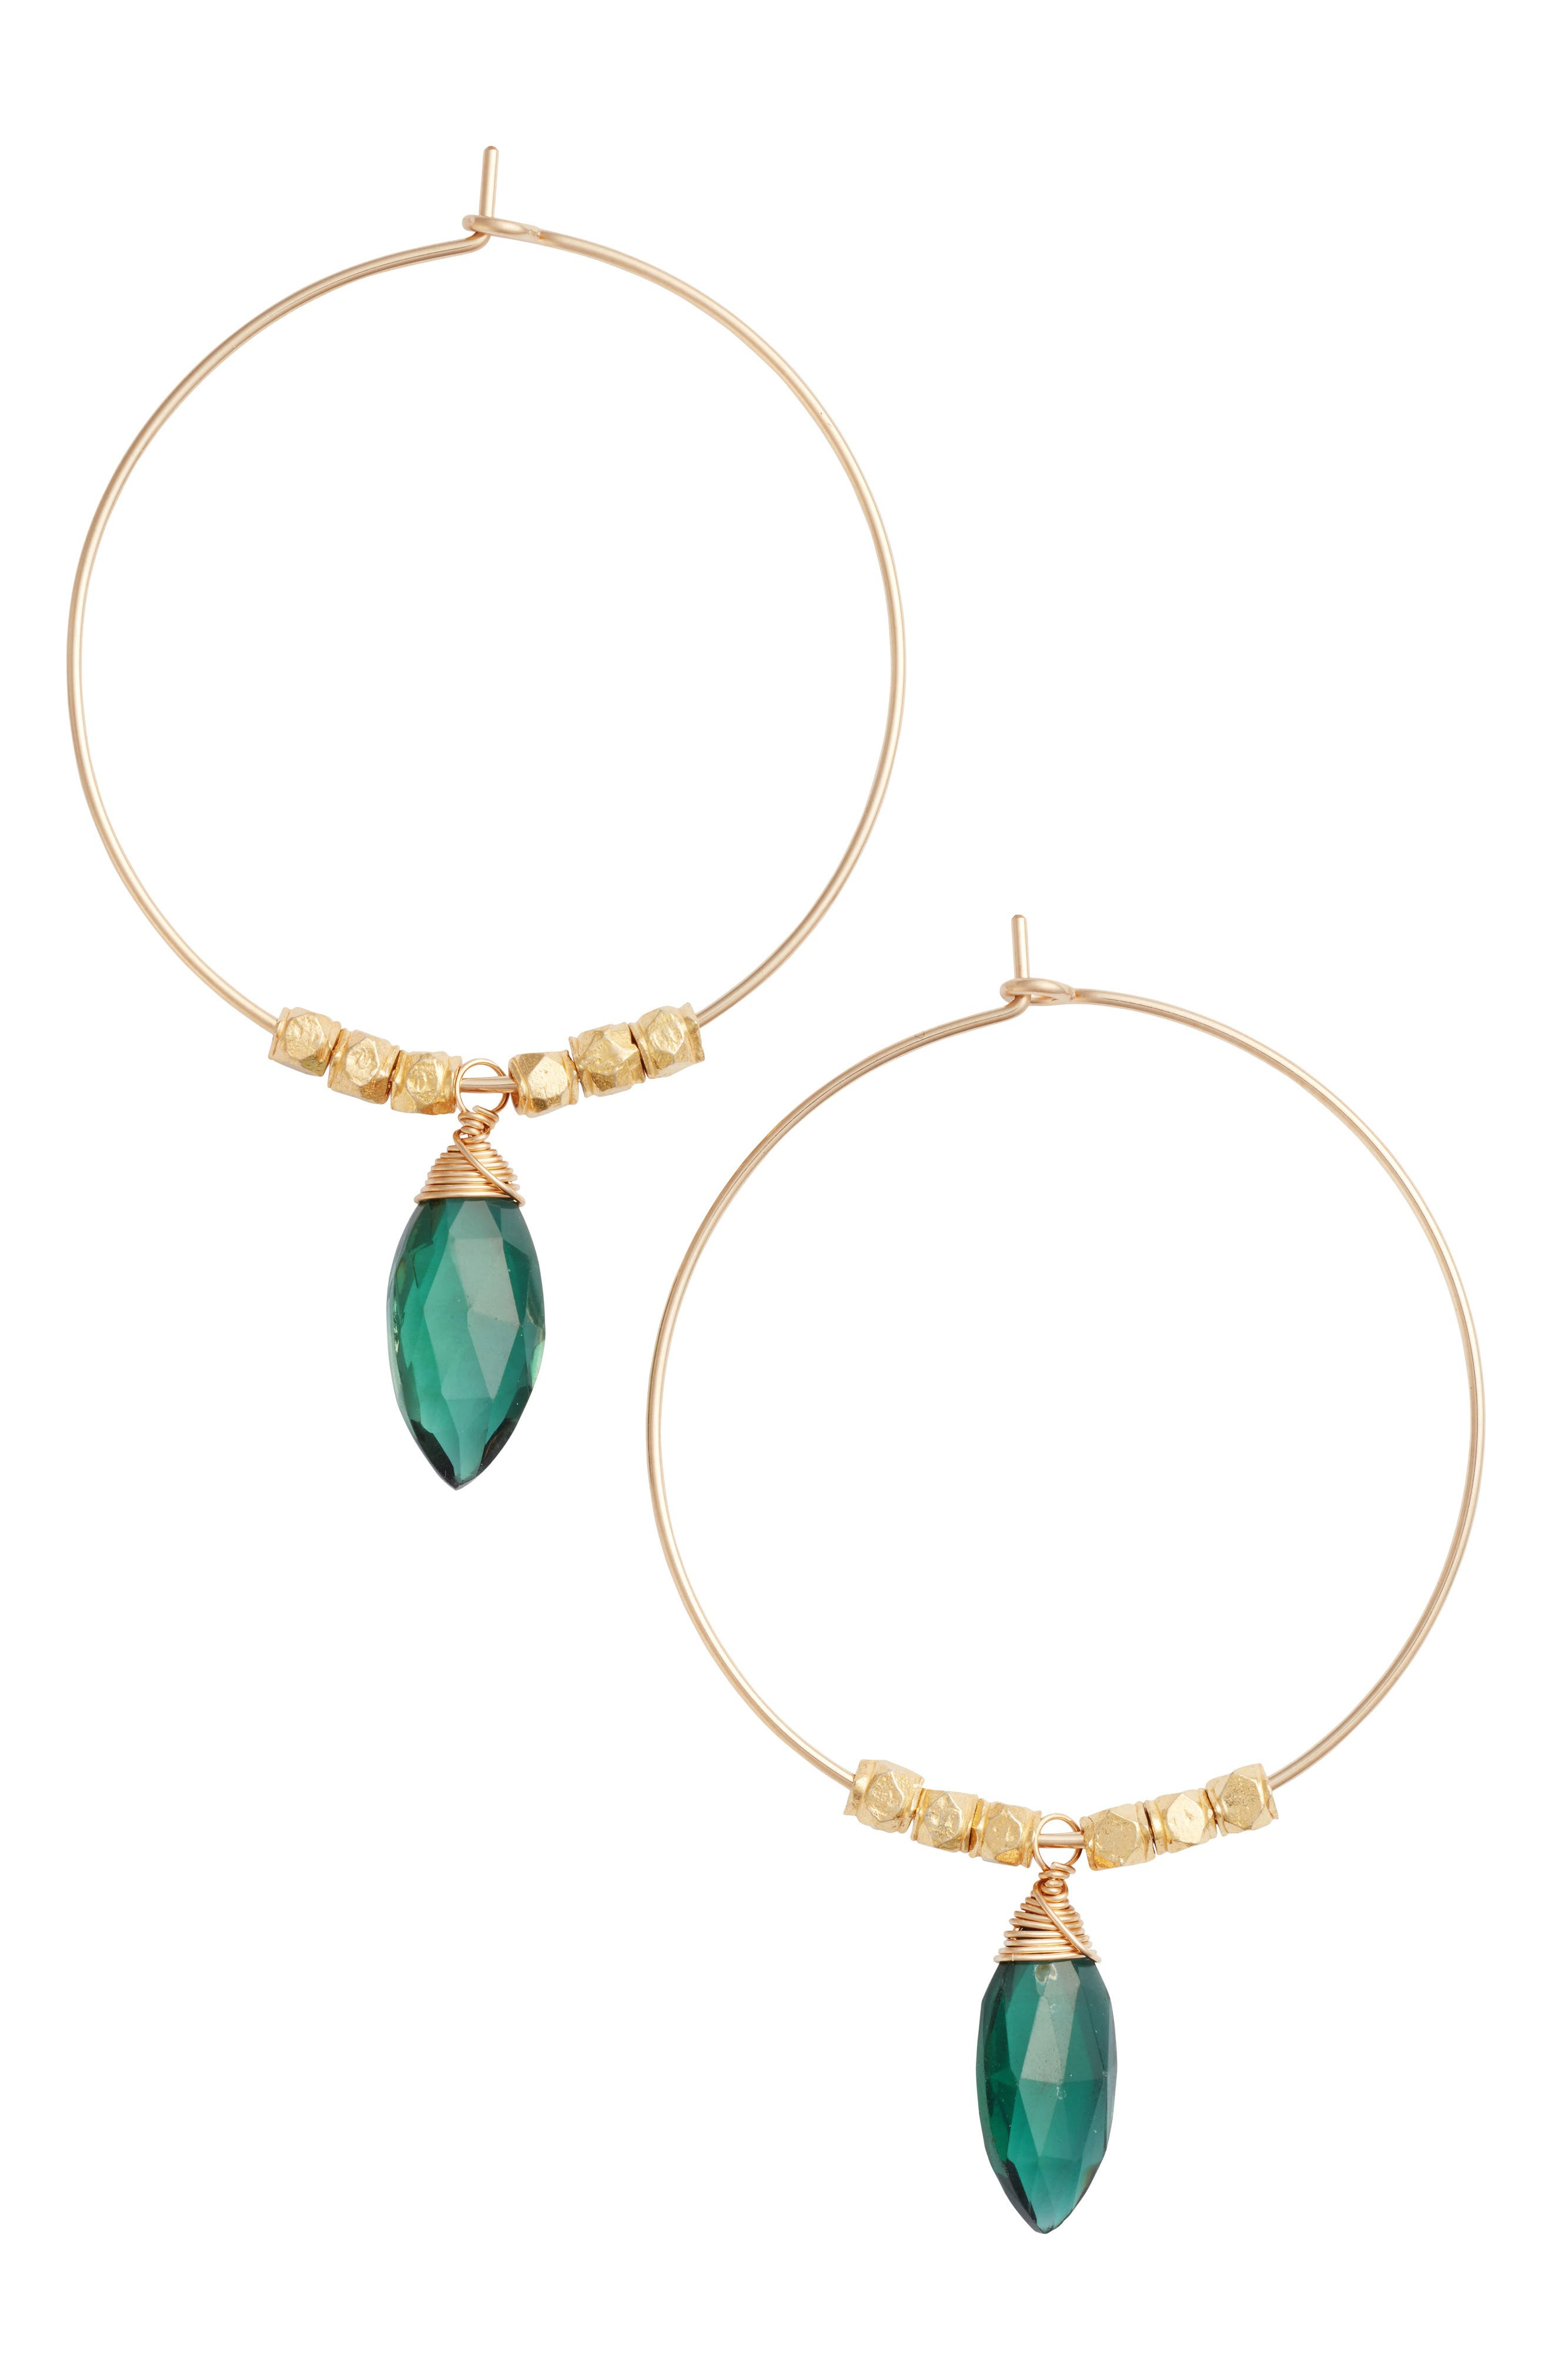 Nashelle Spearhead Soul Hoop Earrings